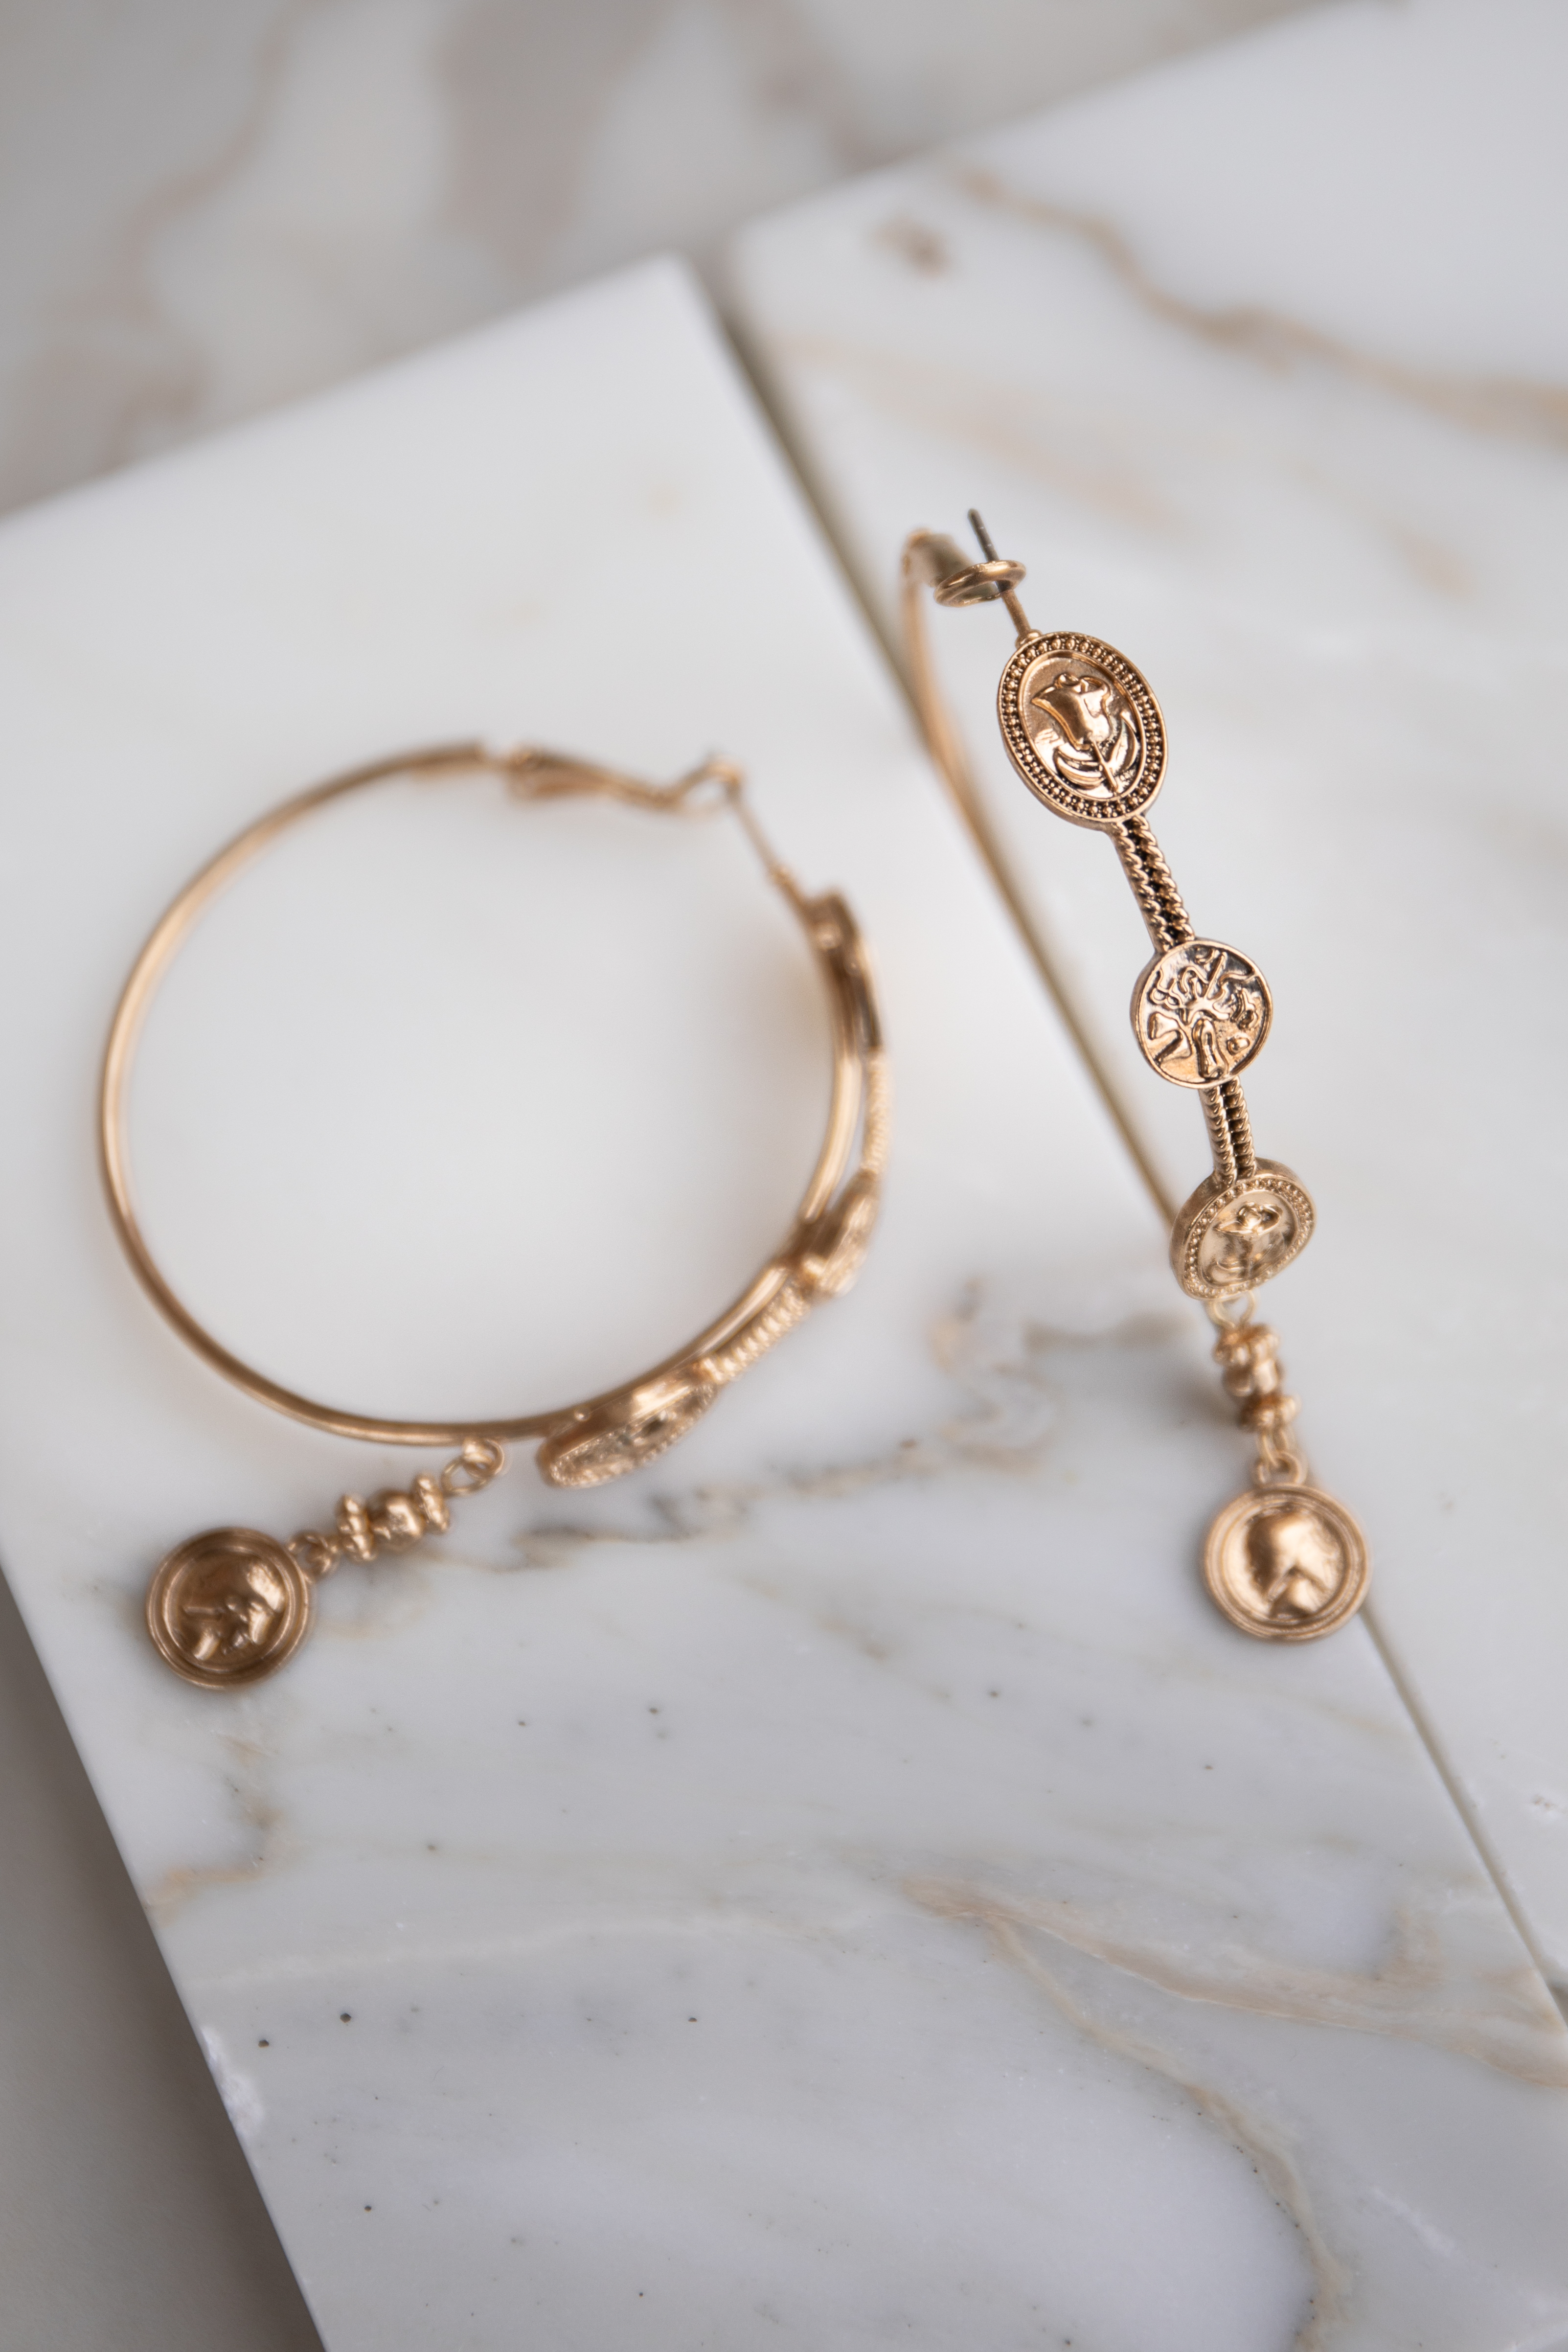 Gold Hoop Earrings with Coin Pendant Details